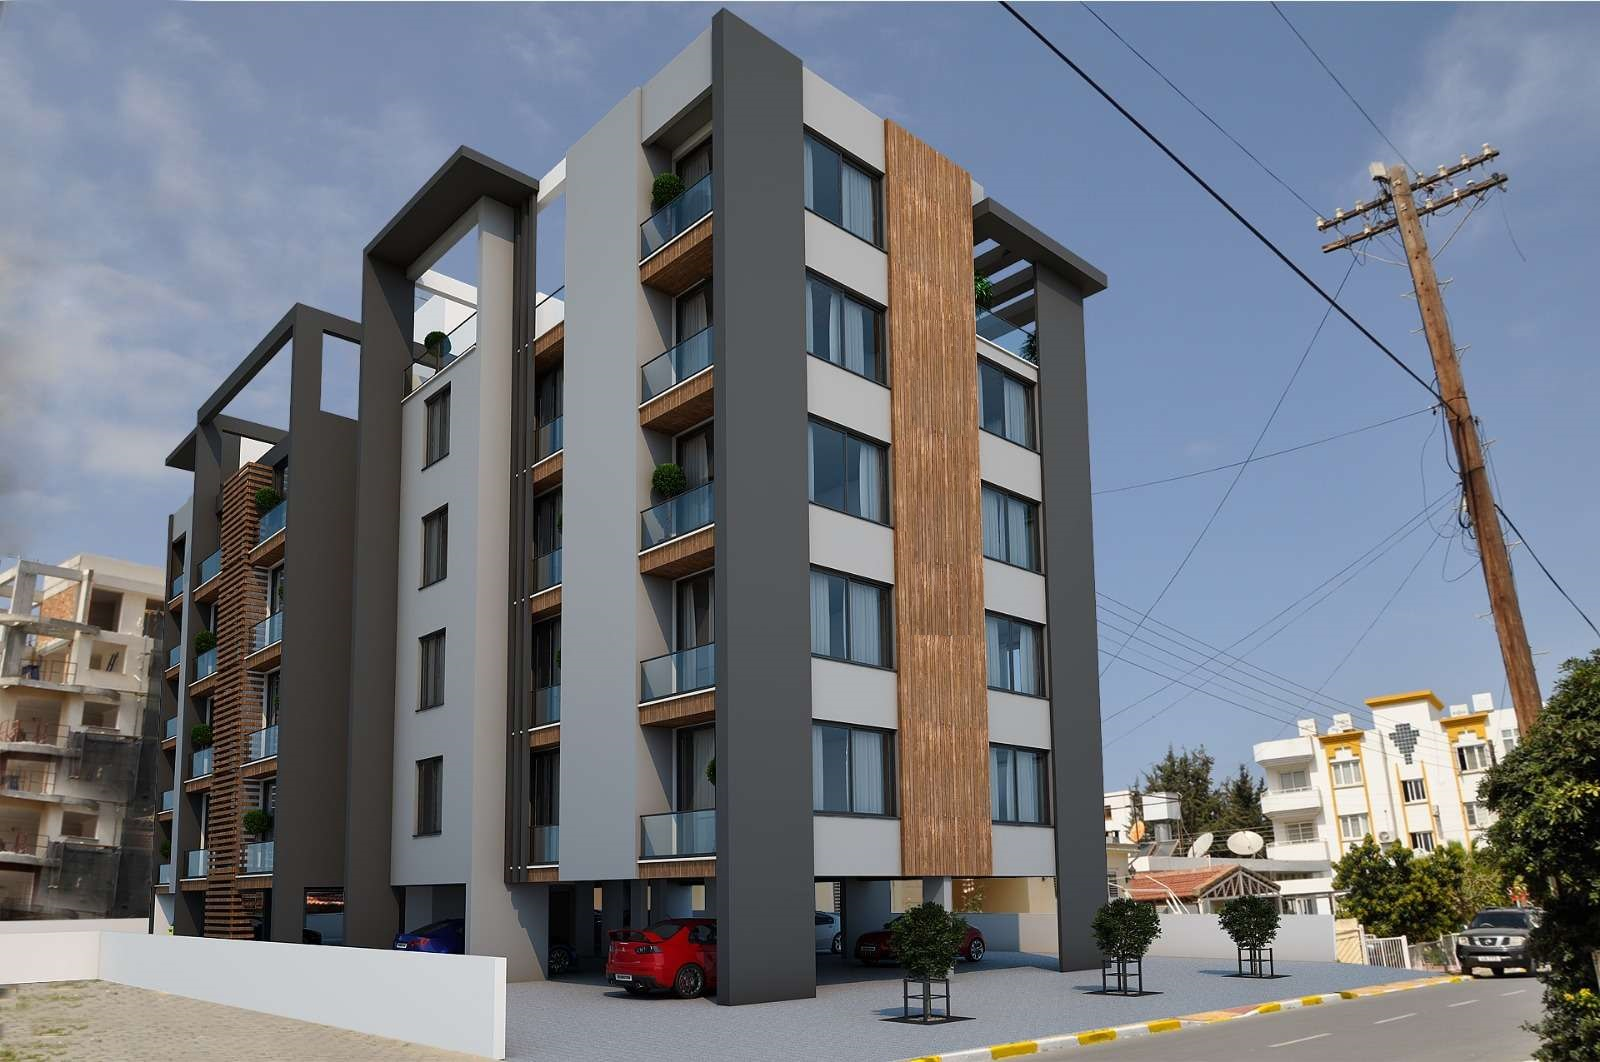 ONE-BEDROOM-MODERN-APARTMENT-IN-CENTRAL-KYRENIA-KY683A